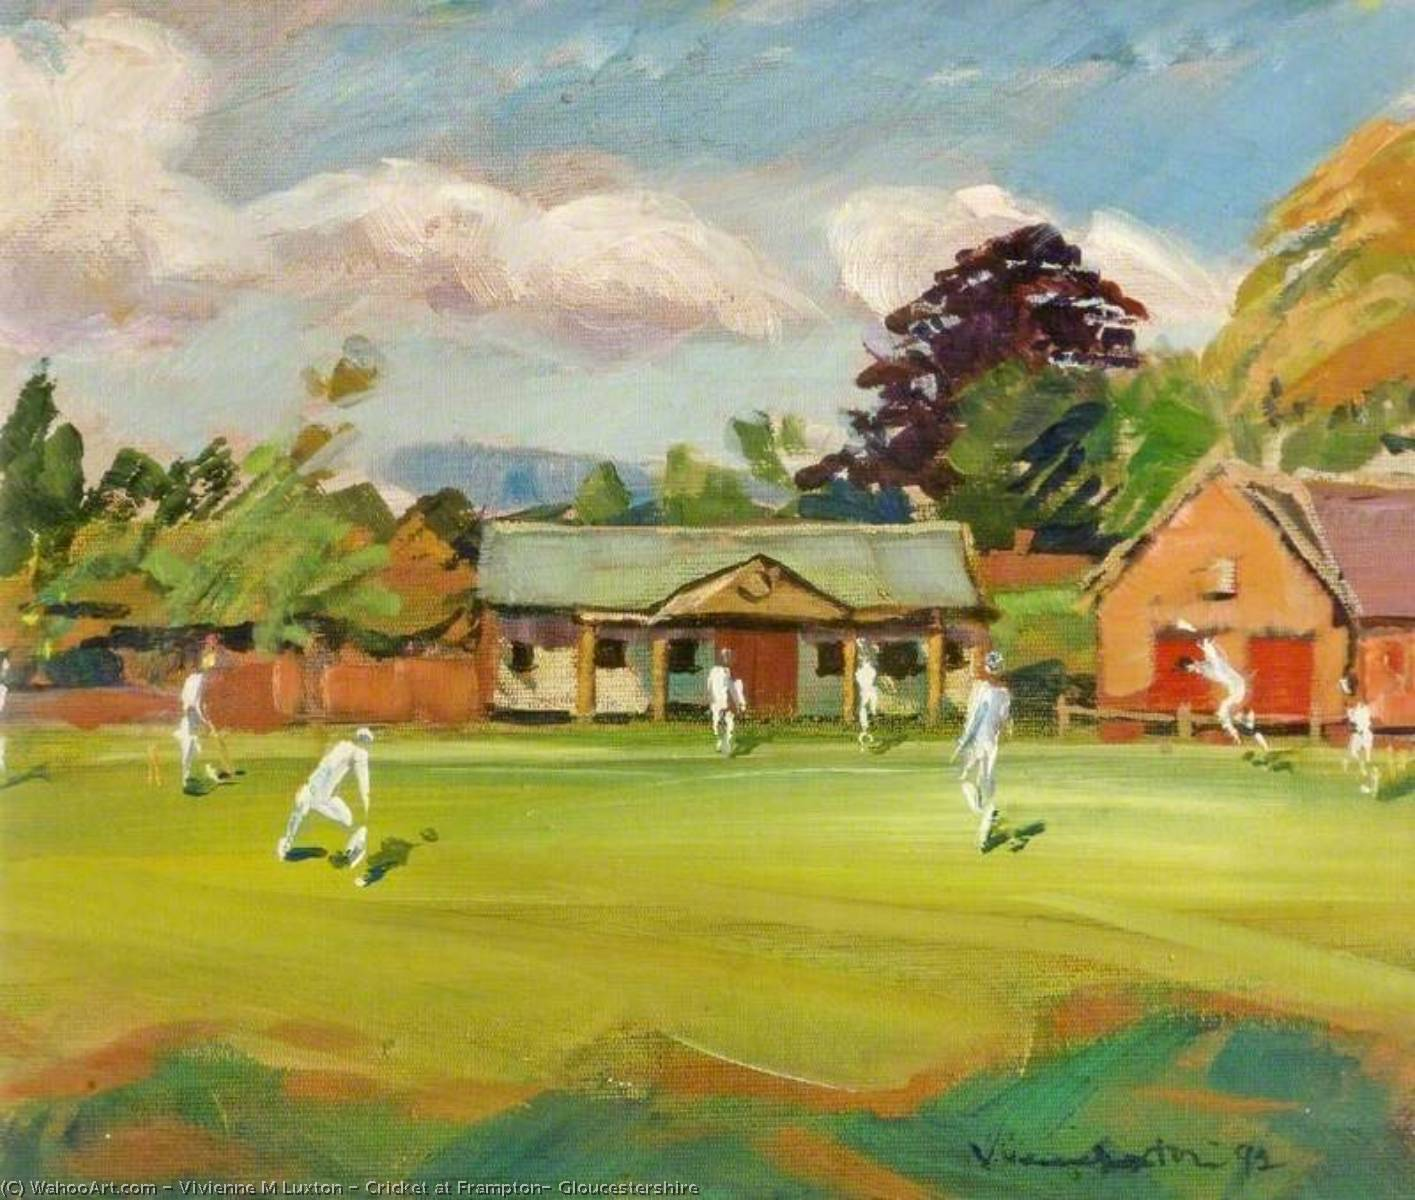 Cricket at Frampton, Gloucestershire, Paper by Vivienne M Luxton